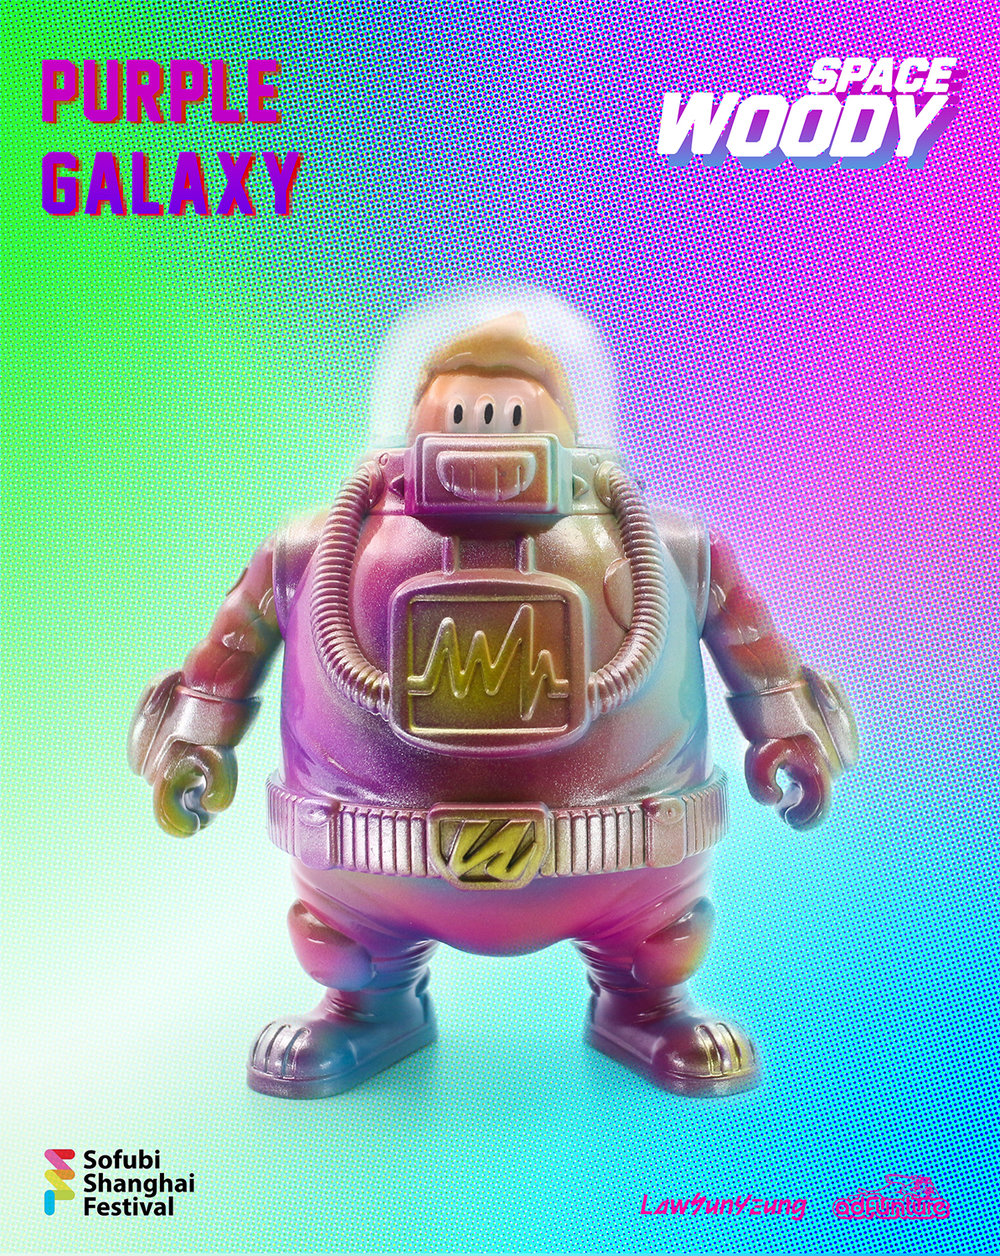 PURPLE GALAXY - Leading up to the first official colored edition of SPACE WOODY, Law Sun Yeung produced a micro-run of 10 pieces dubbed PURPLE GALAXY to be released at SOFUBI SHANGHAI FESTIVAL on Jan. 26th of 2019.